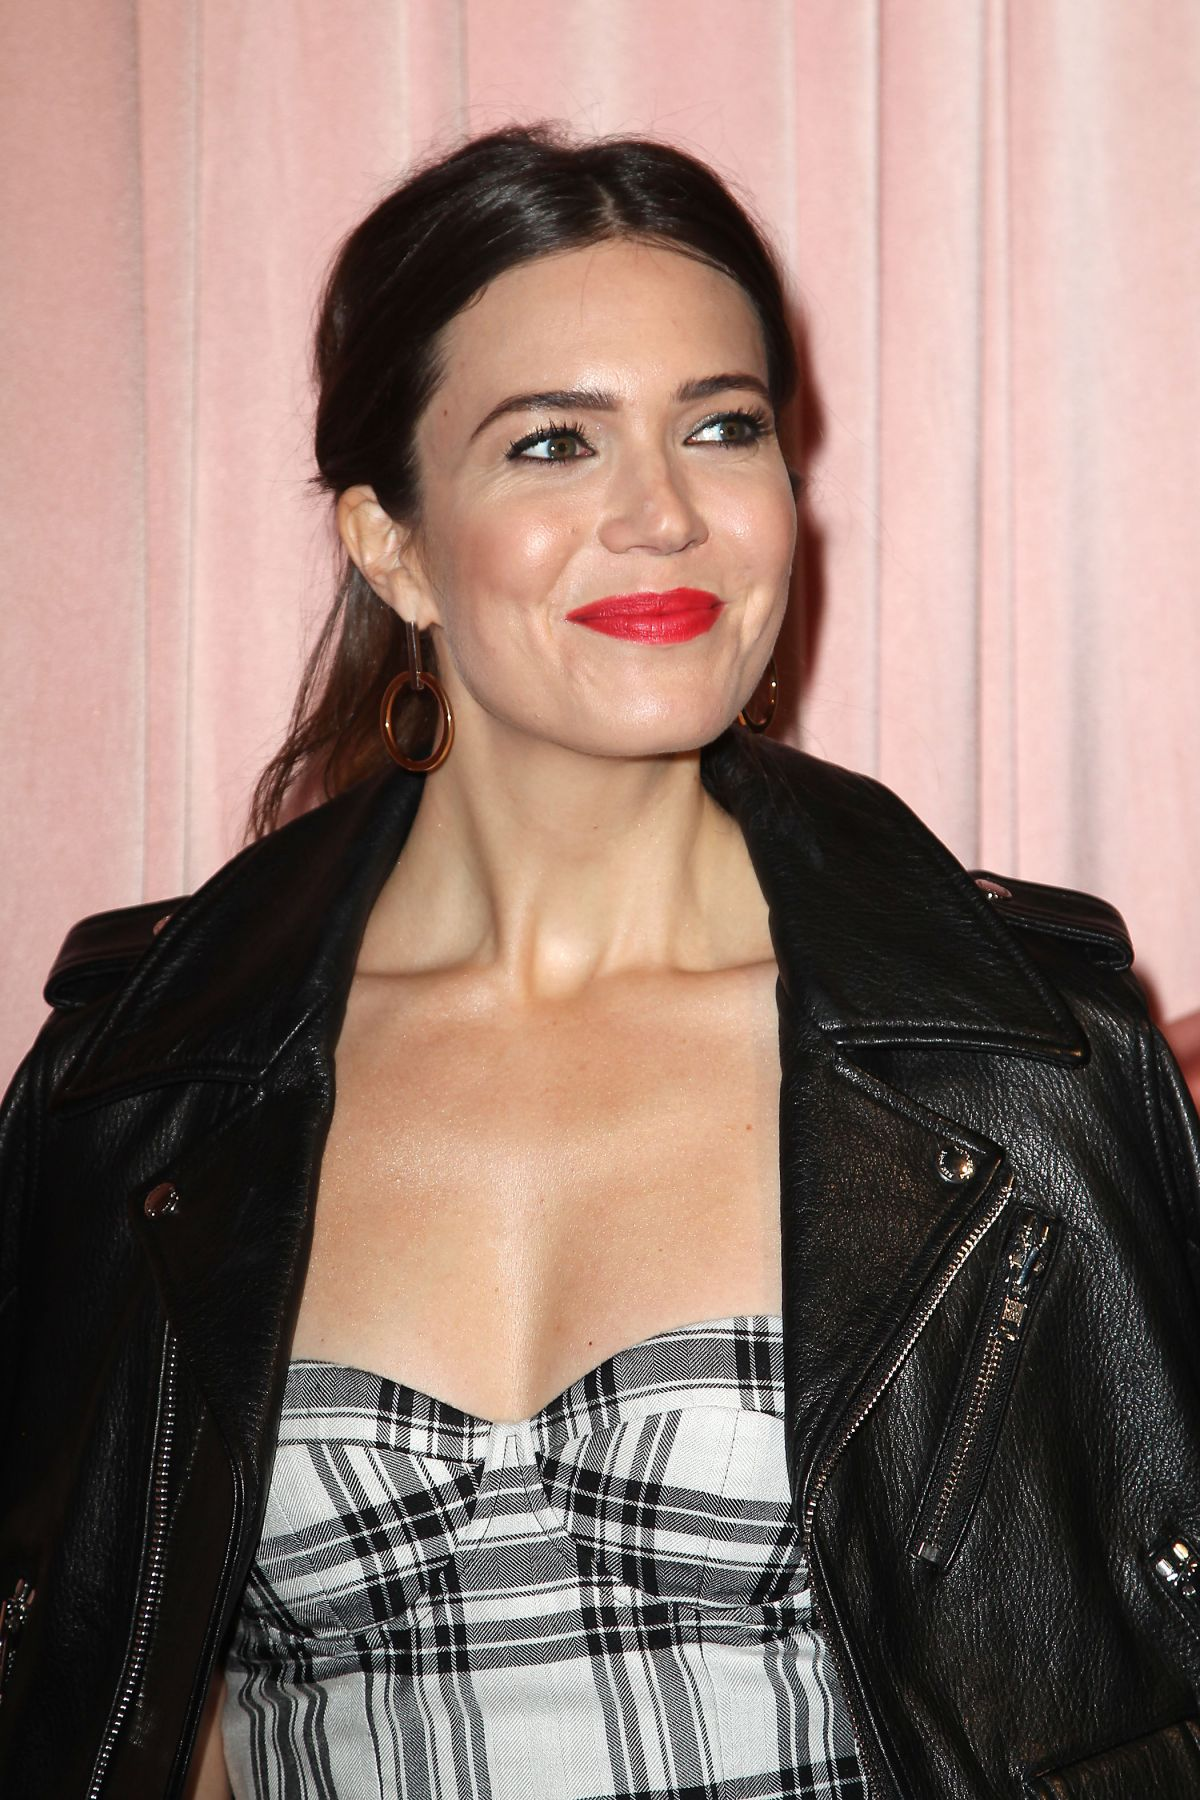 MANDY MOORE at Aice+Olivia by Stacey Bendet Presentation in New York 02/14/2017   mandy-moore-at-aice-olivia-by-stacey-bendet-presentation-in-new-york-02-14-2017_6